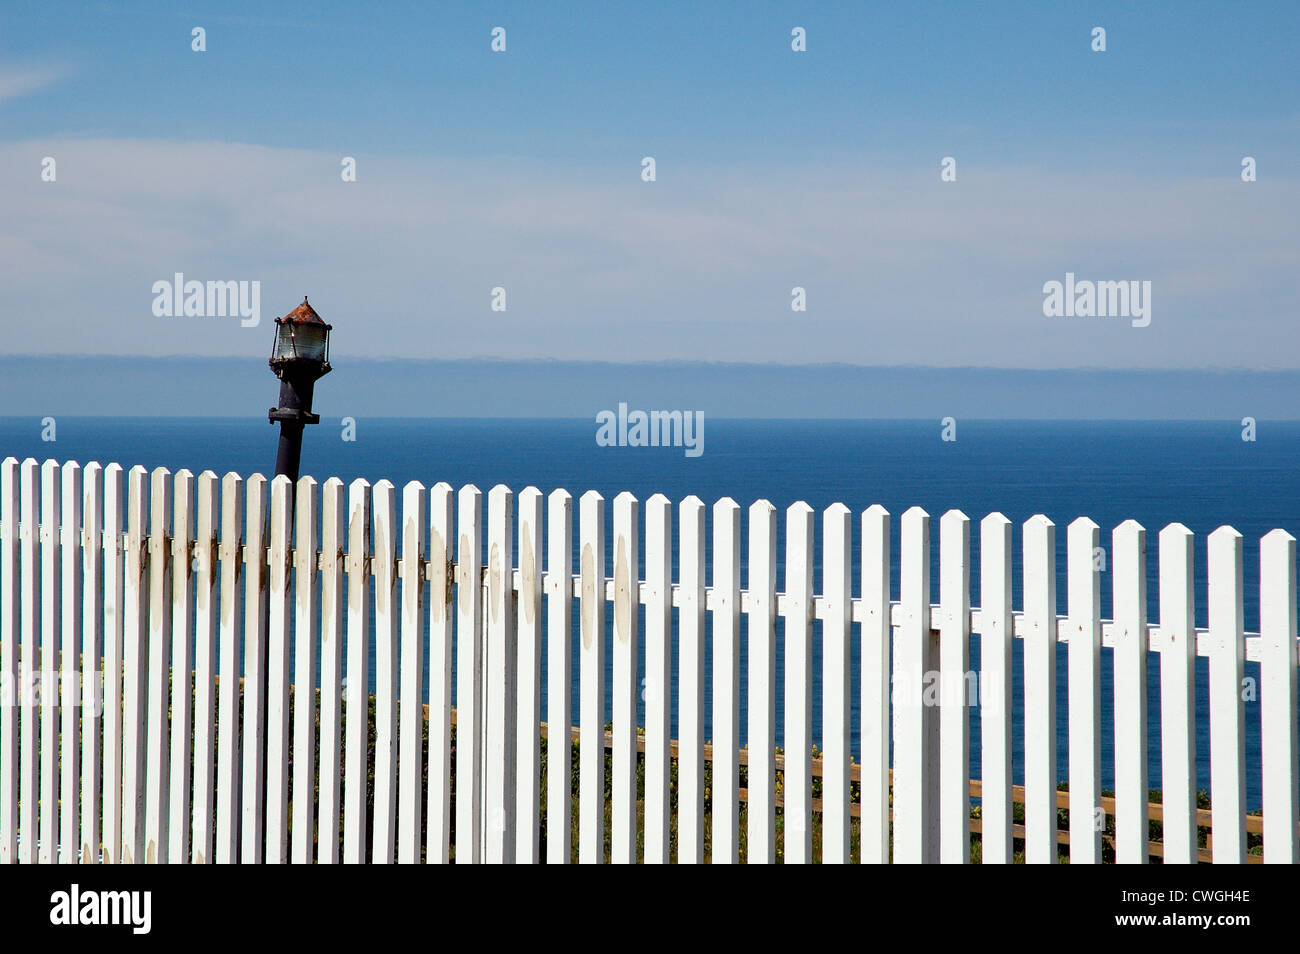 White Picket Fence & OceanStock Photo